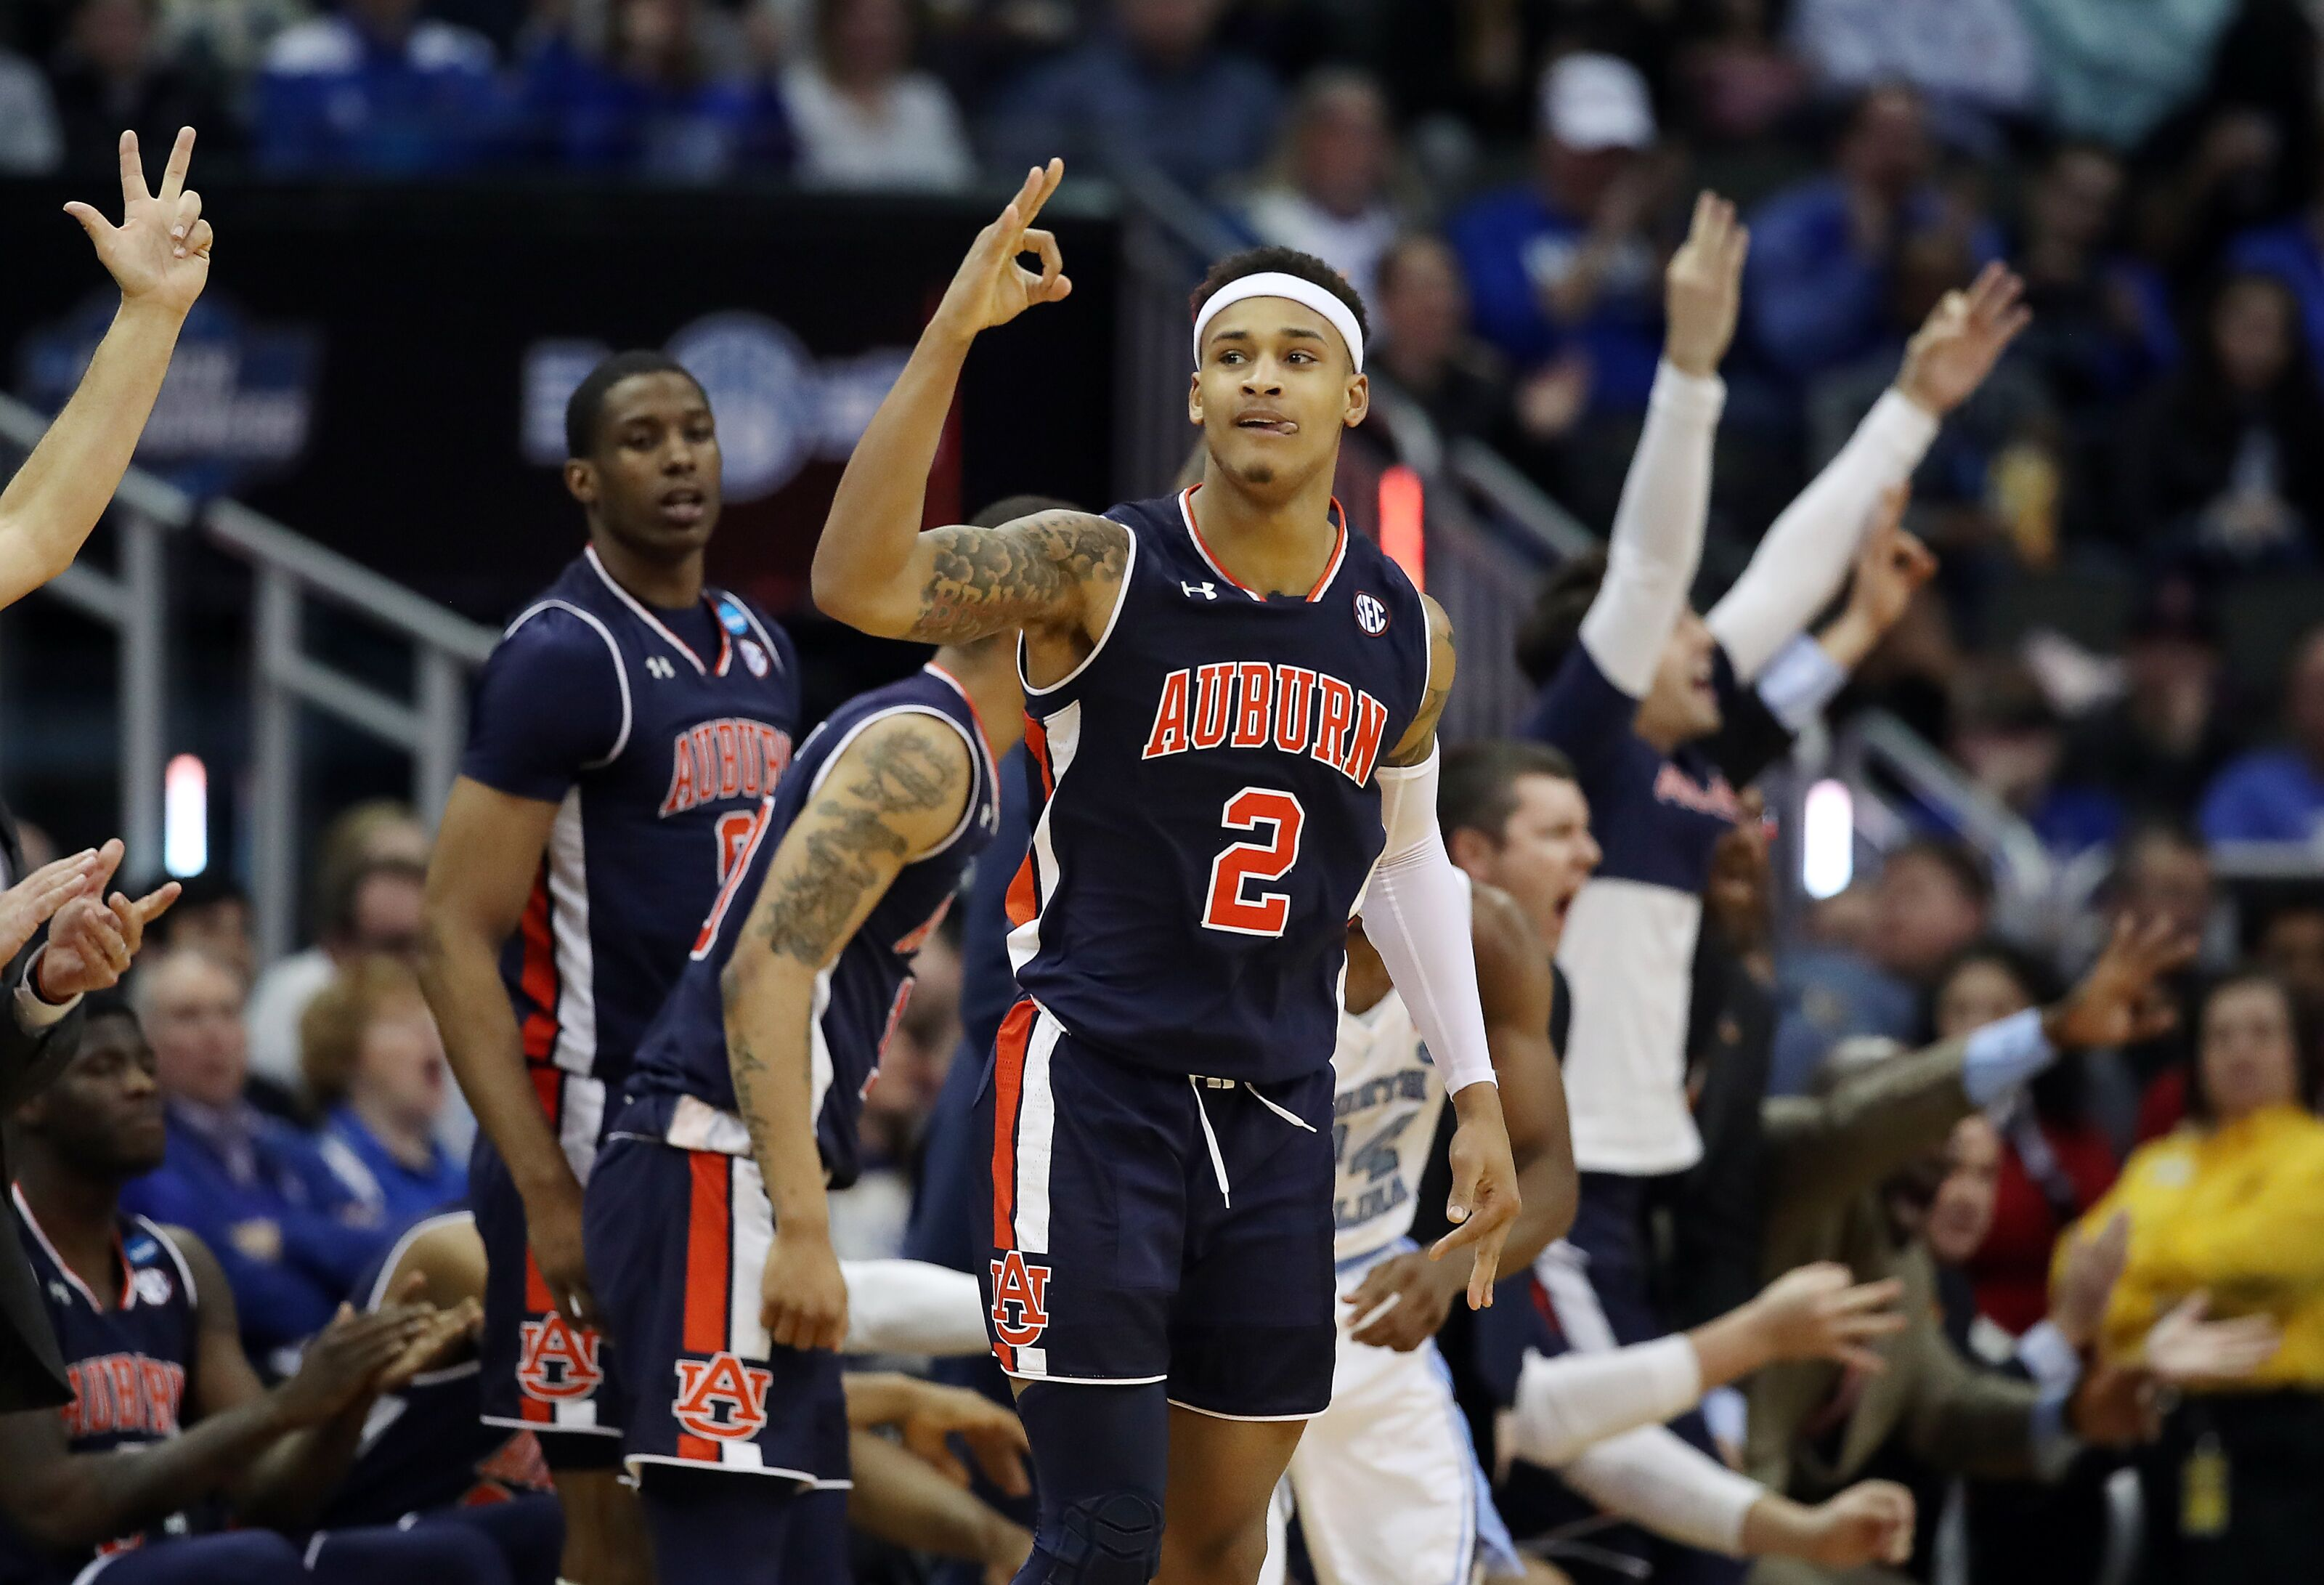 Auburn Basketball Keys For Tigers To Beat Virginia In Final